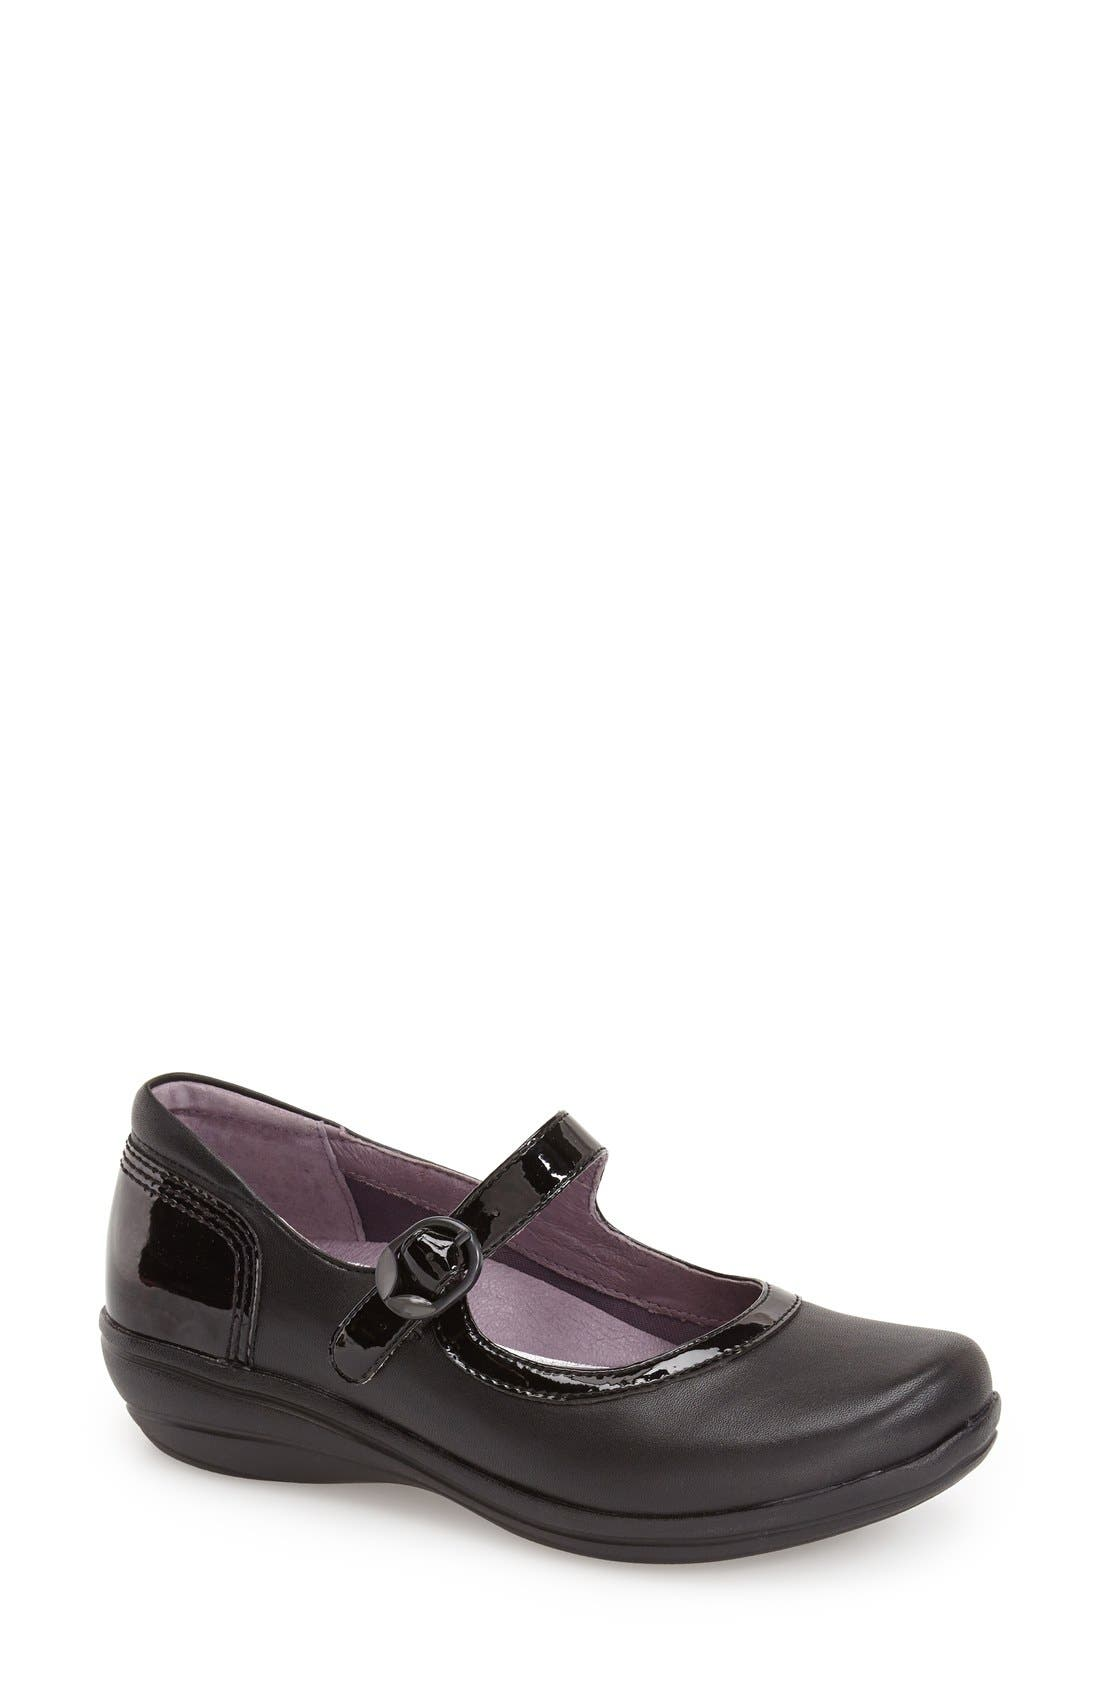 DANSKO,                             'Misty' Mary Jane Wedge,                             Main thumbnail 1, color,                             001